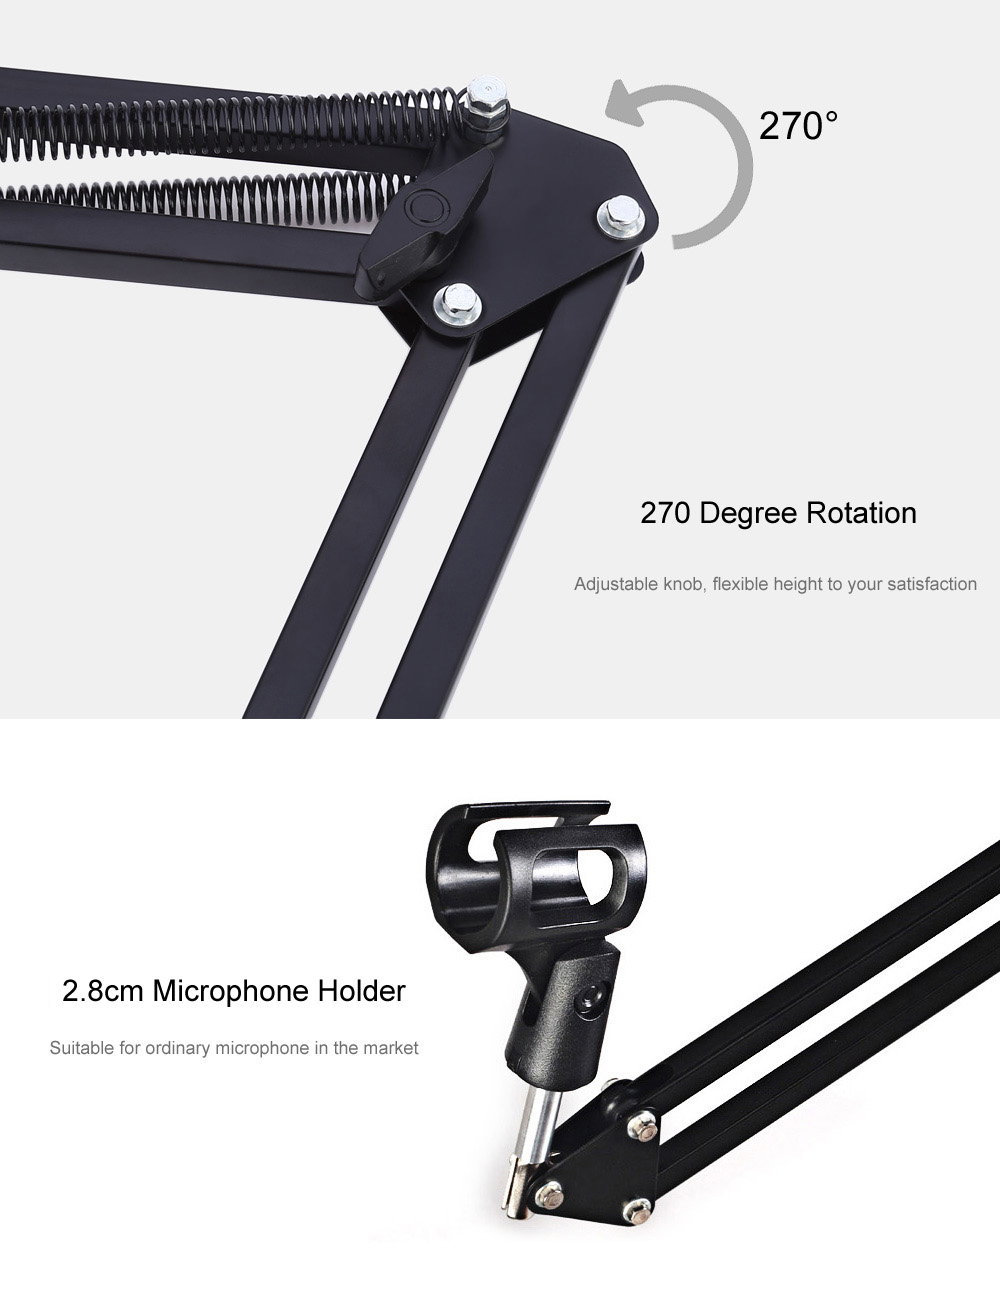 nb - 35 Professional Metal-plating Microphone Stand Holder for Music Recording Use